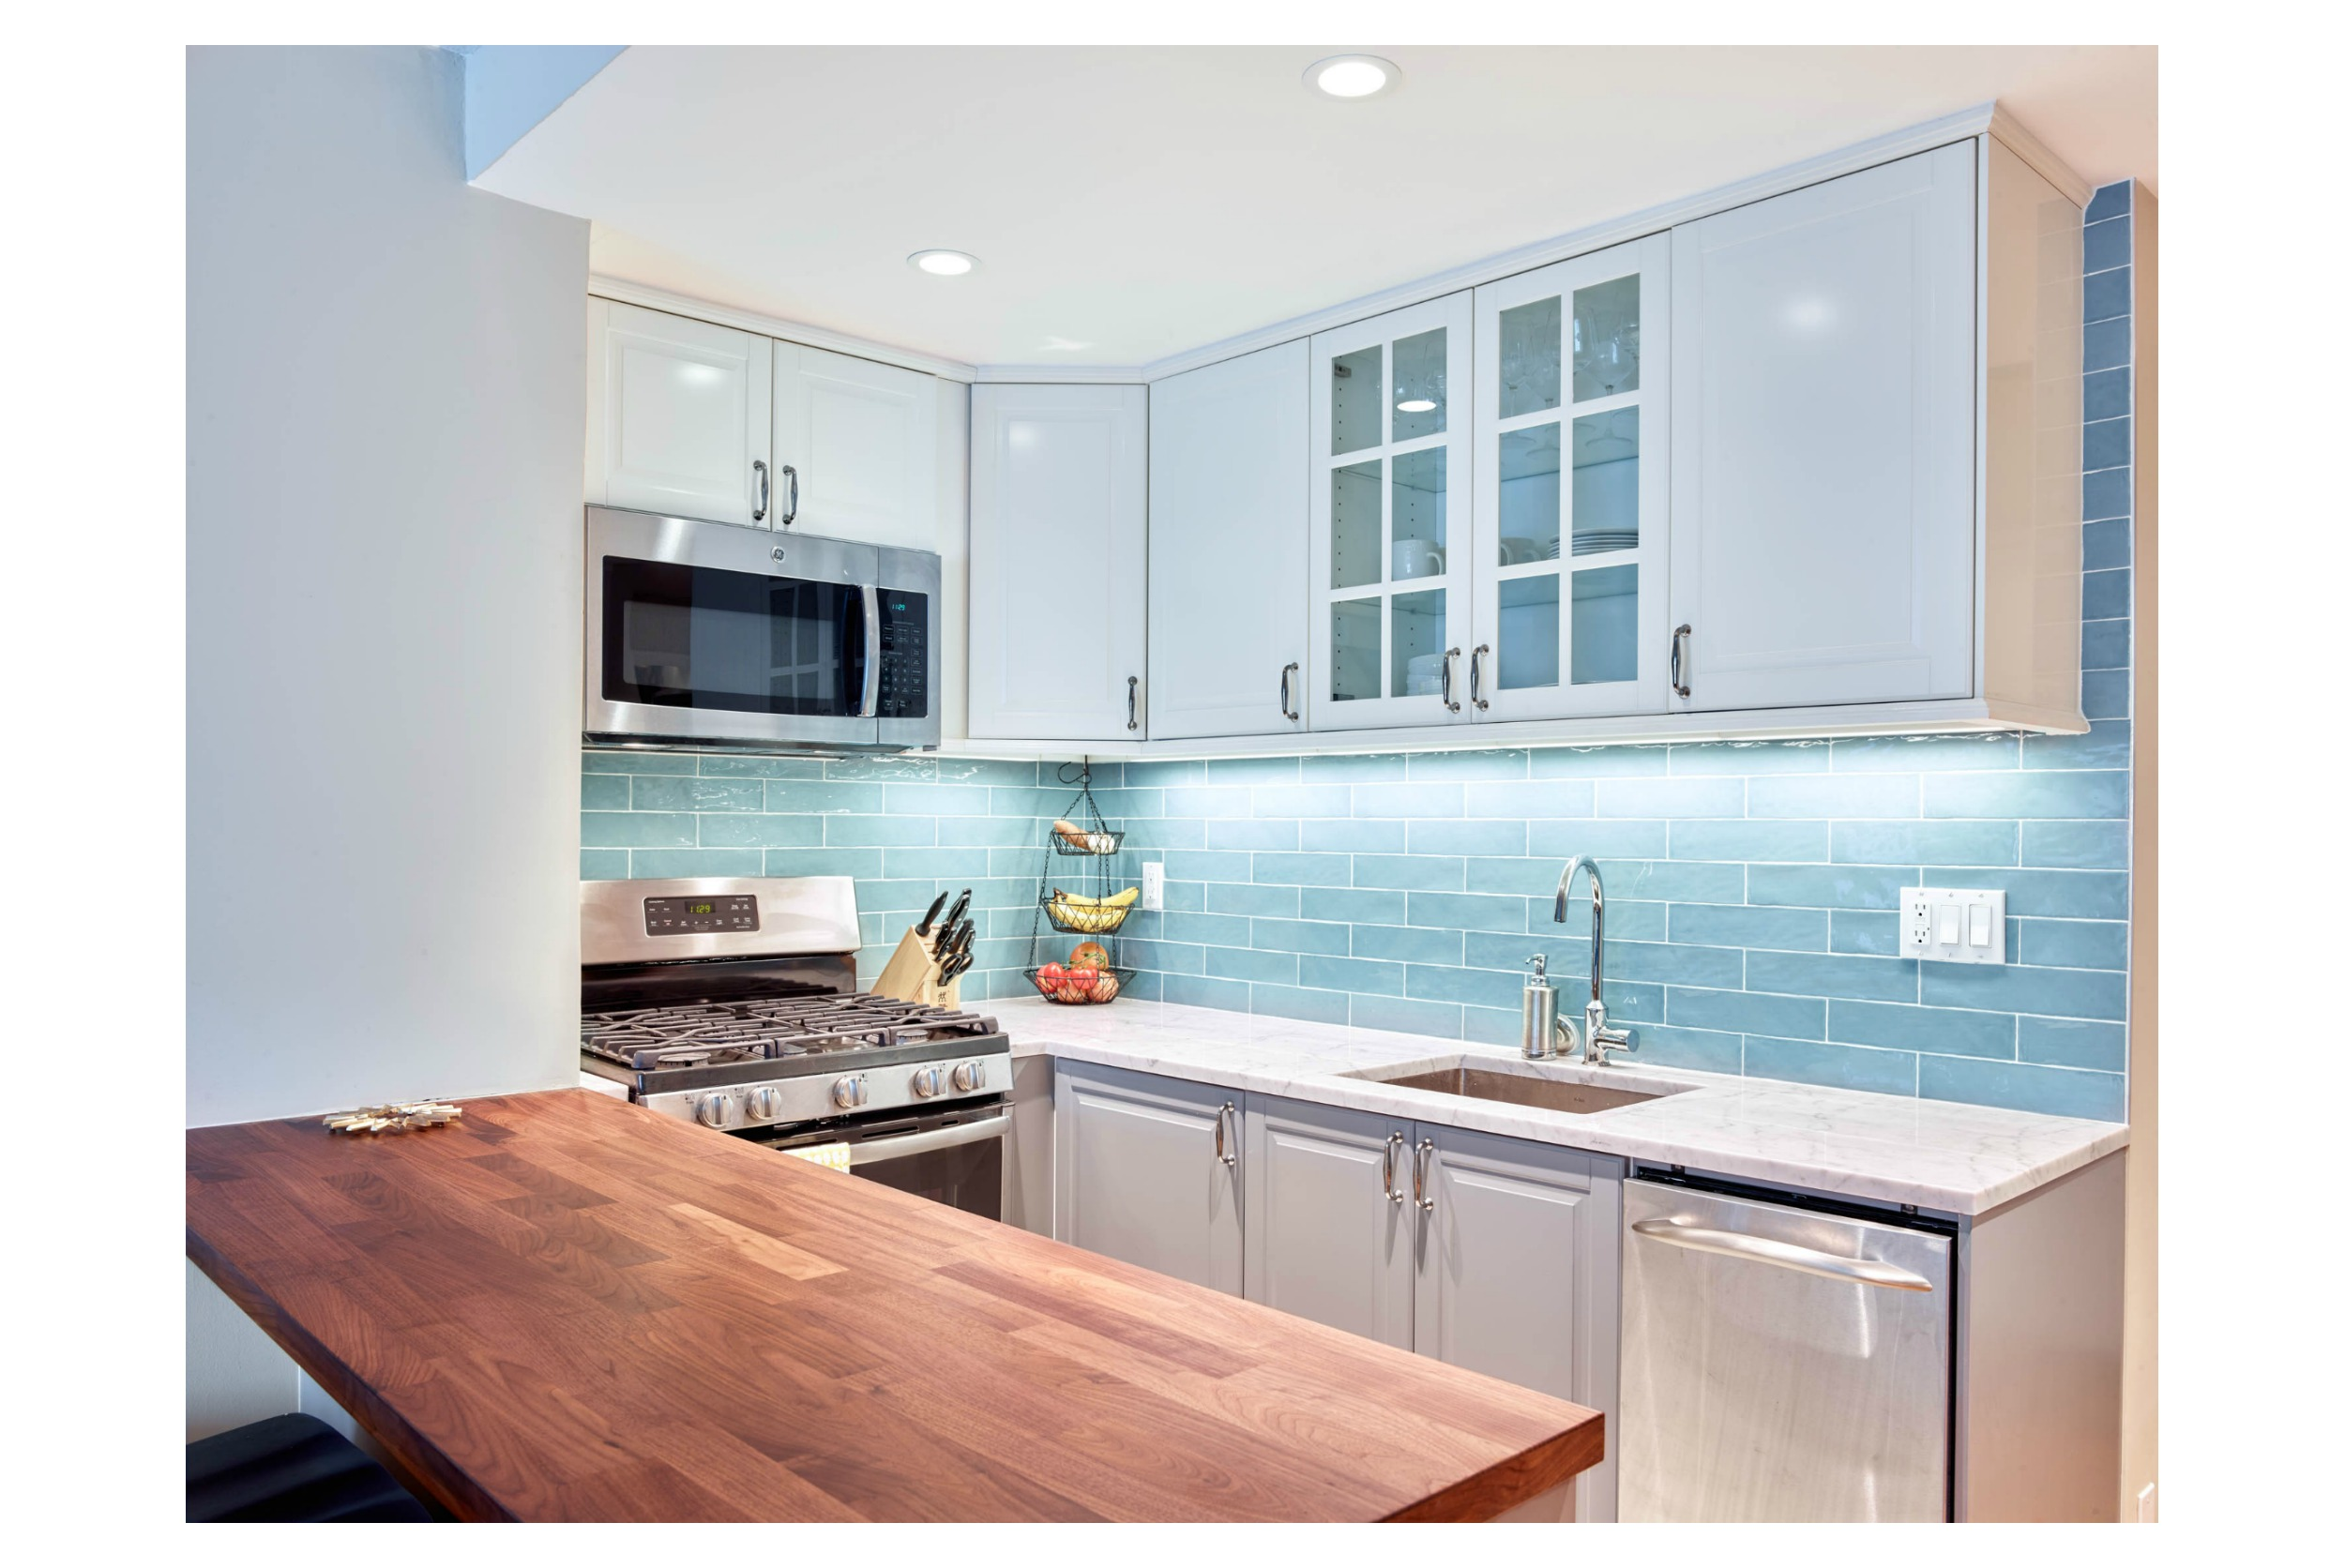 brooklyn-heights-kitchen-renovation.jpg